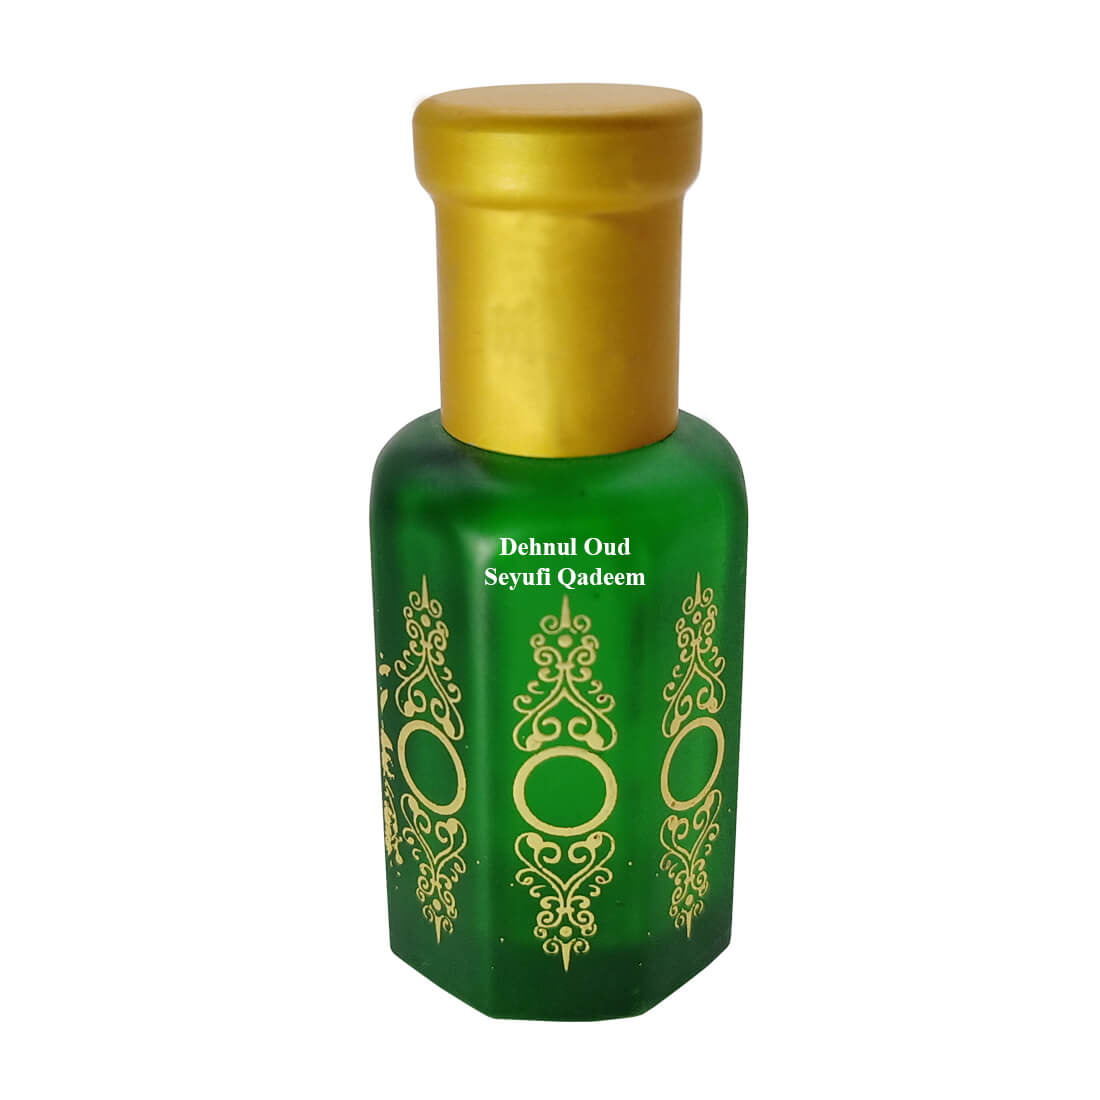 Dehnul Oud Seyufi Qadeem Attar By Al Saud - 12ml